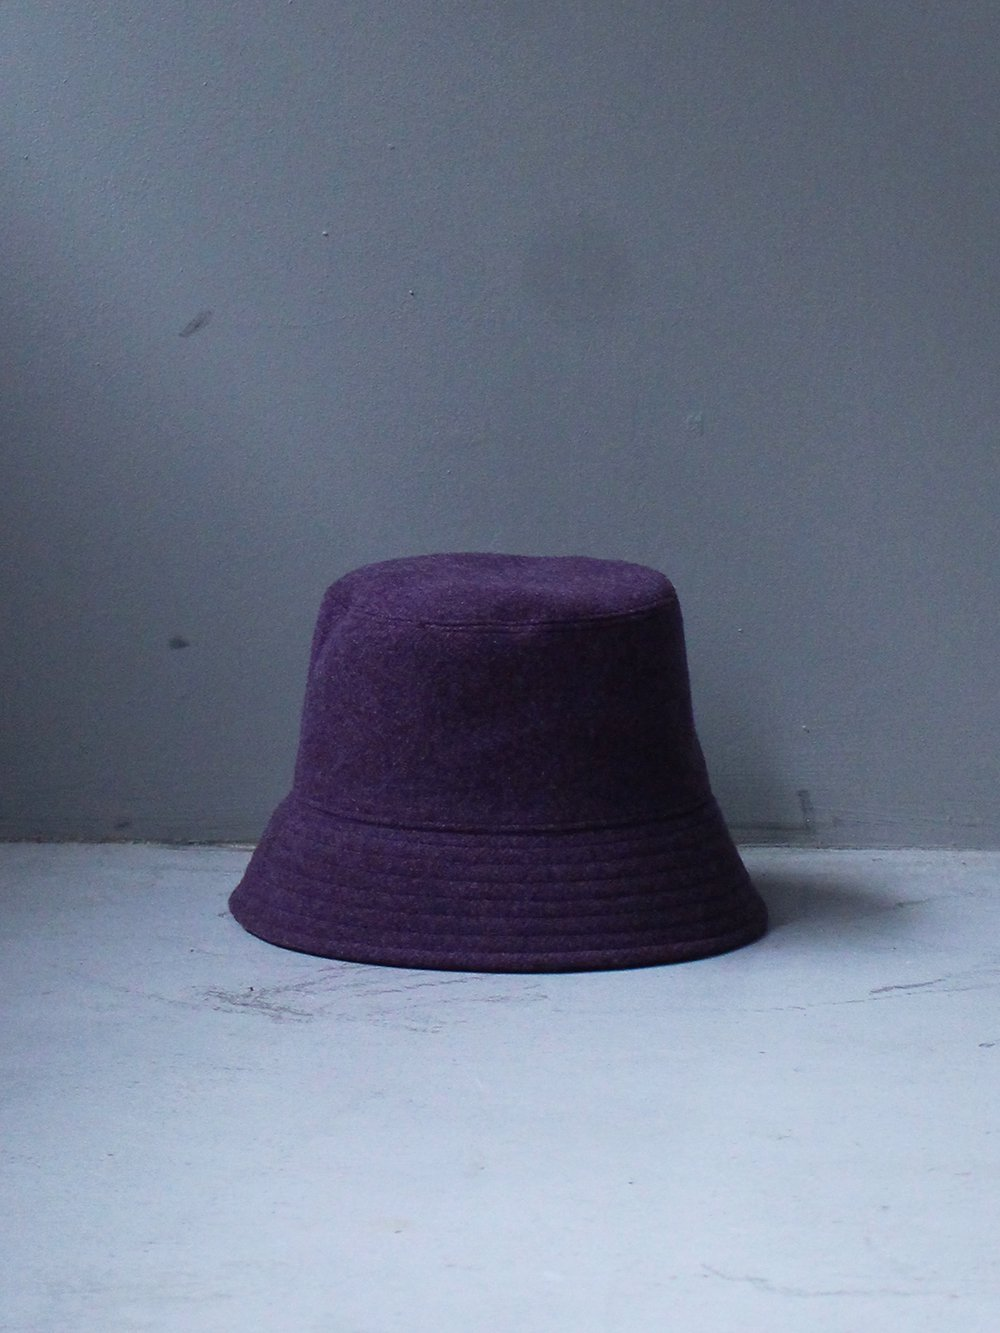 """<img class='new_mark_img1' src='https://img.shop-pro.jp/img/new/icons8.gif' style='border:none;display:inline;margin:0px;padding:0px;width:auto;' />UNUSED """" wool bucket hat (purple)"""""""